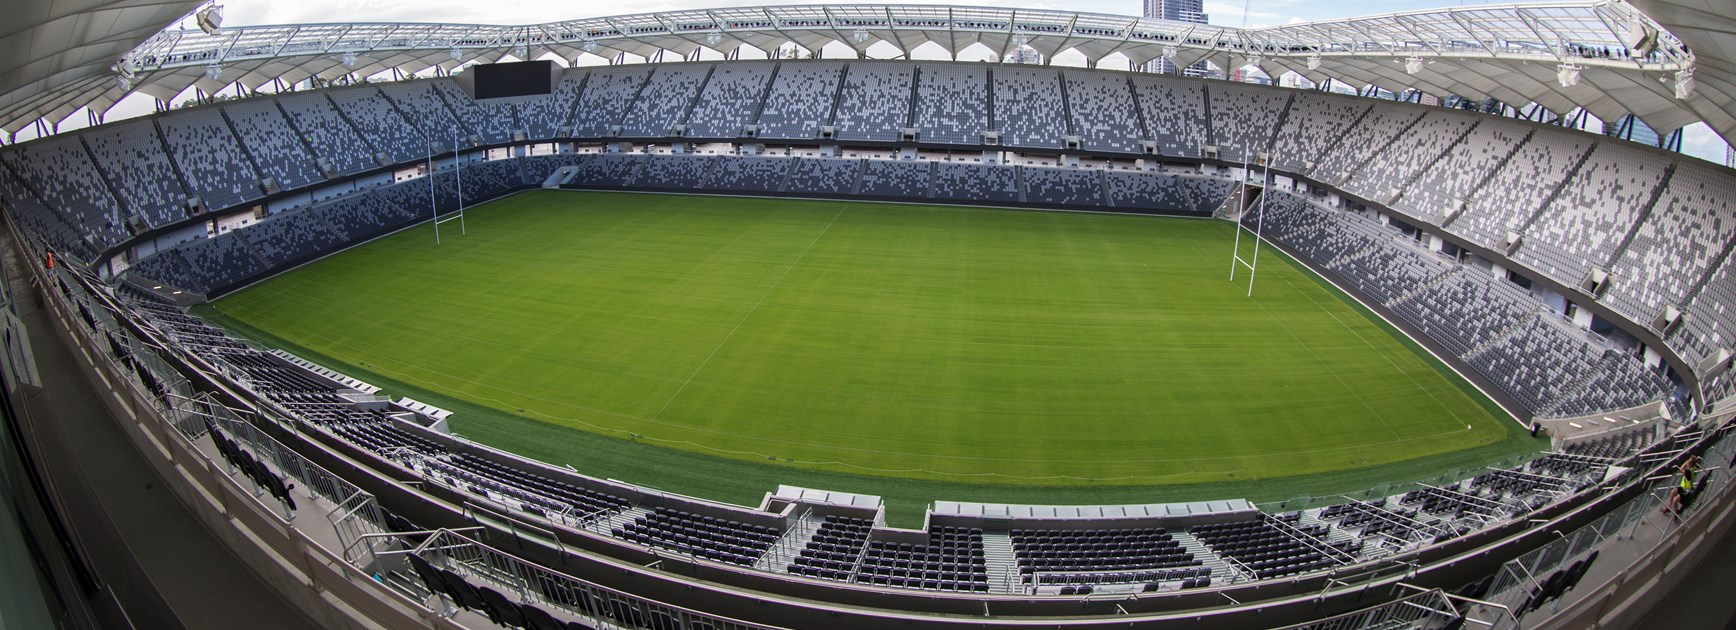 Casual tickets sold out to Bankwest Stadium opening game